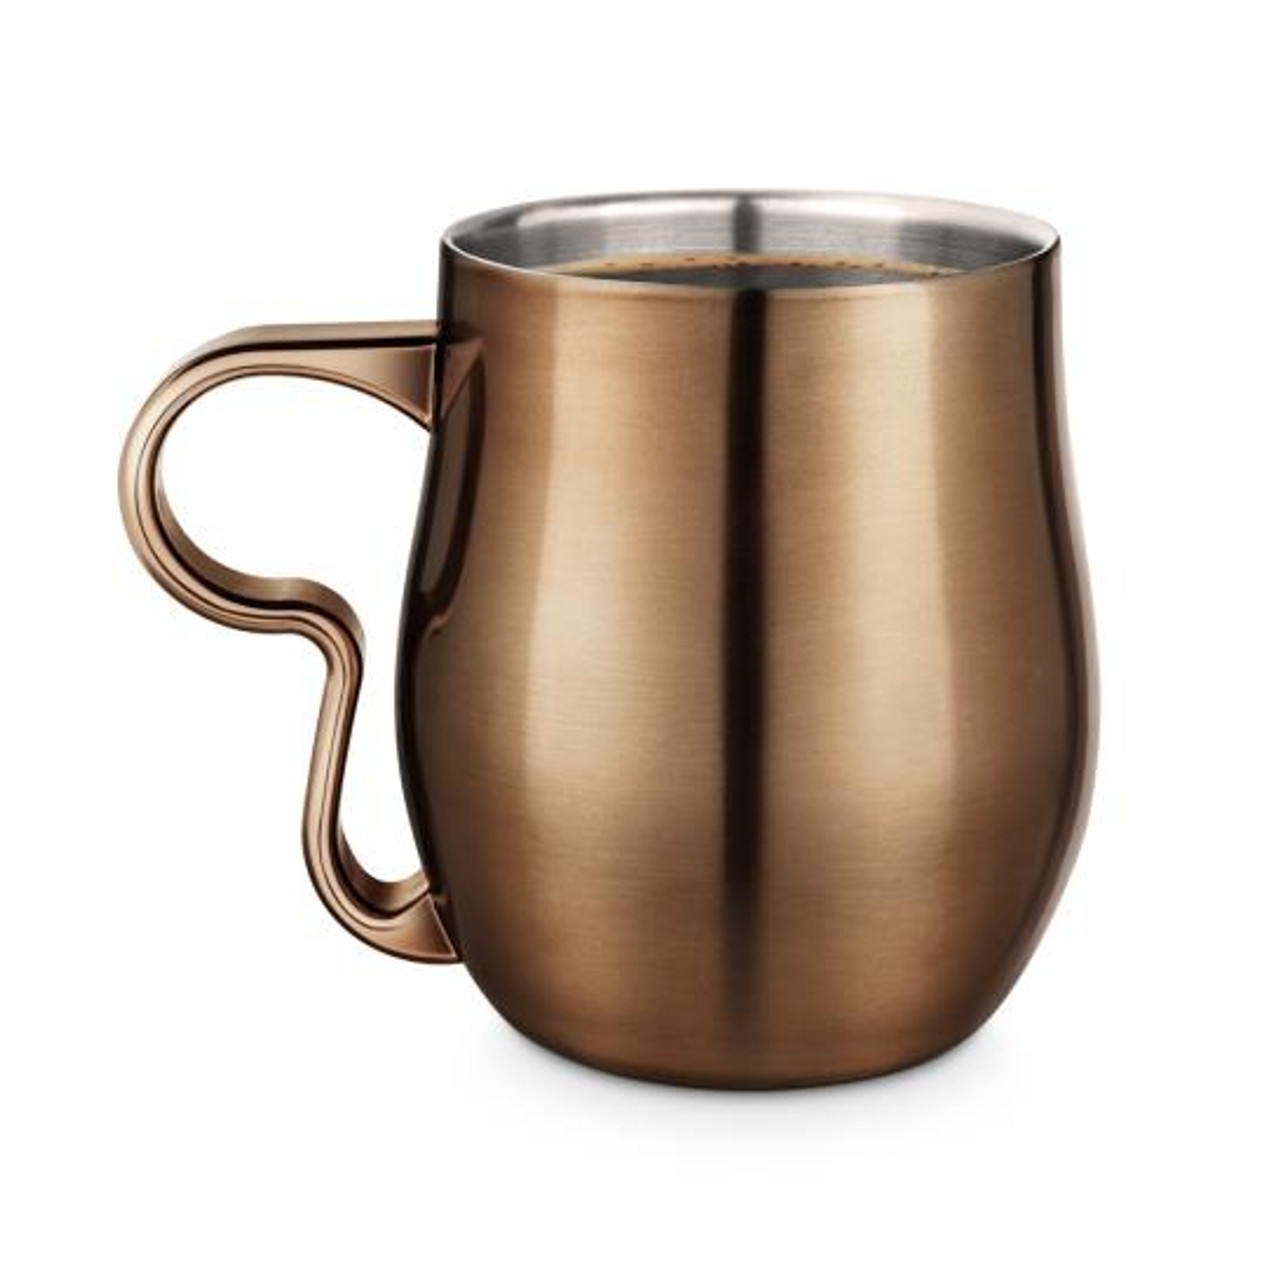 FINAL TOUCH DOUBLE-WALL MUG - COPPER